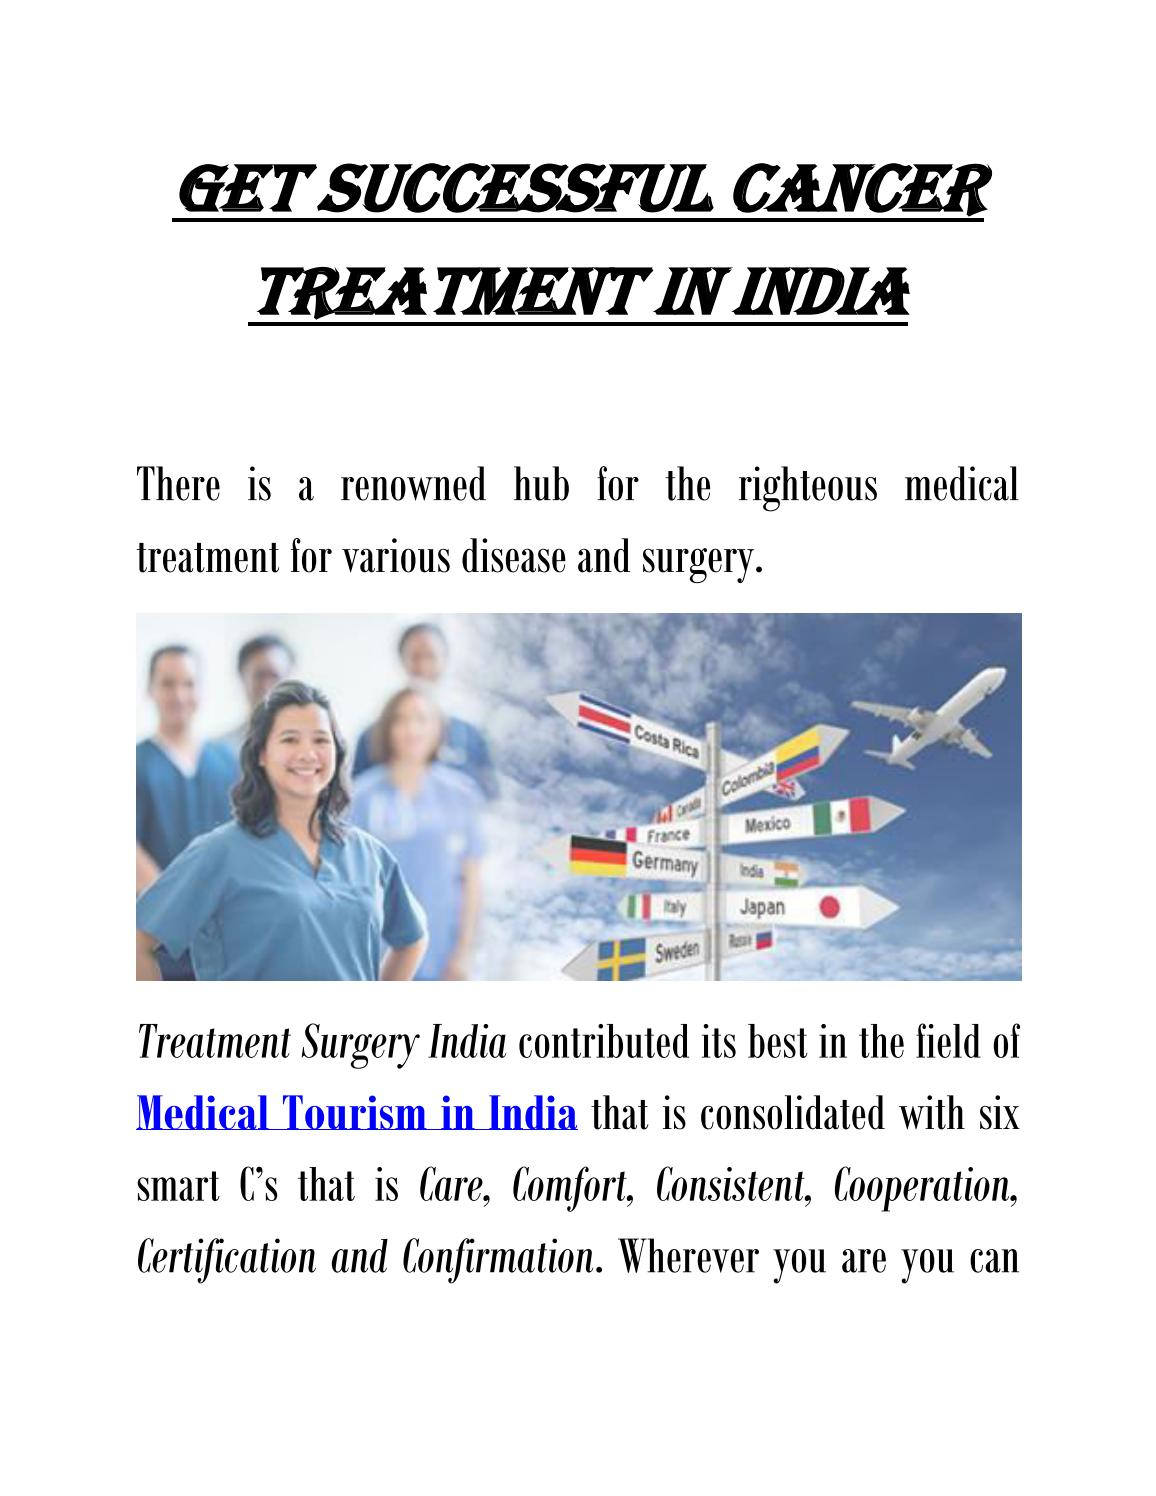 Get Successful Cancer Treatment in India by